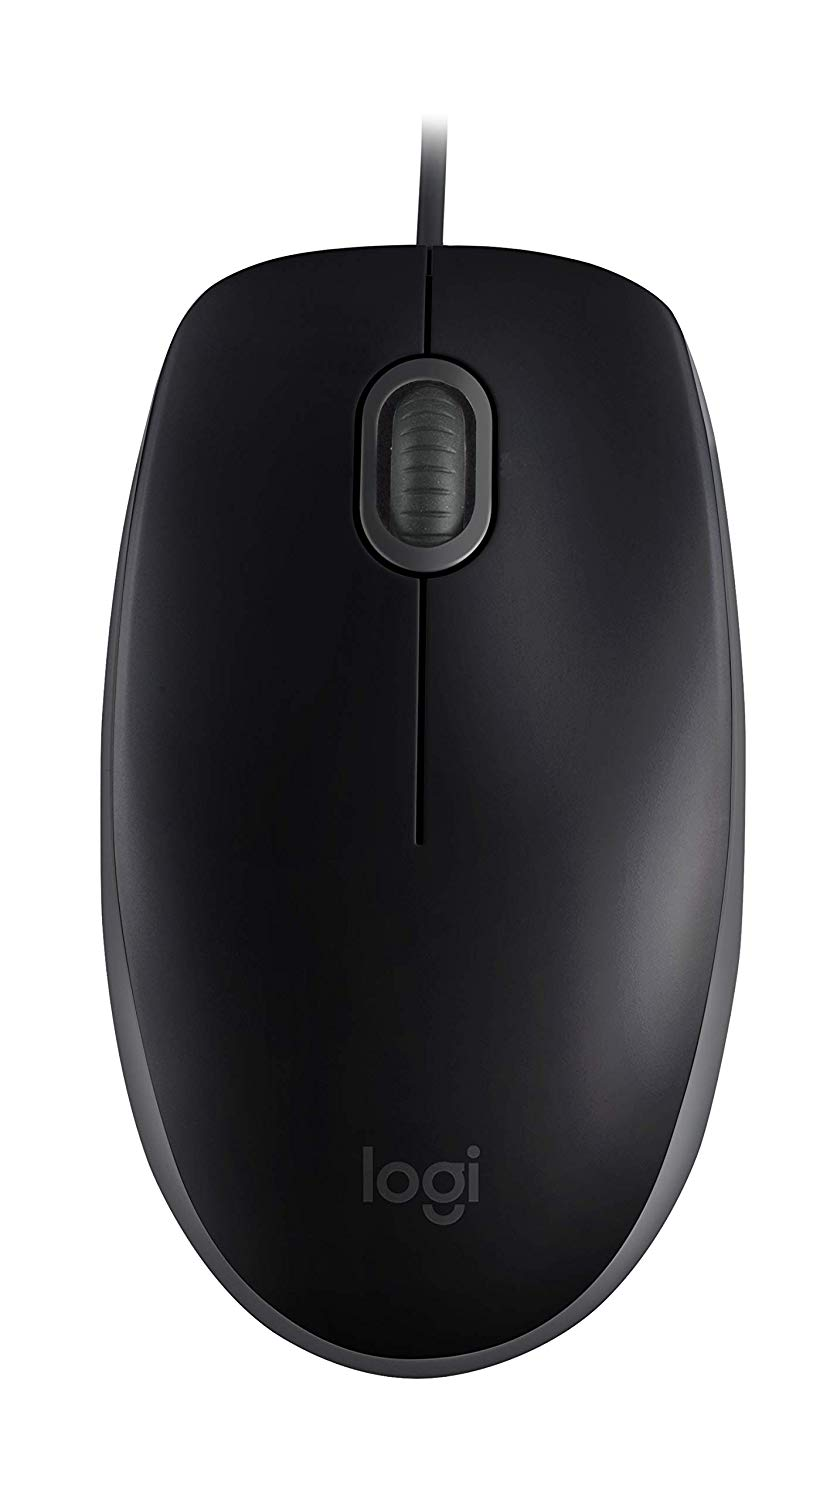 Wireless Logitech B110 Silent Black Mouse